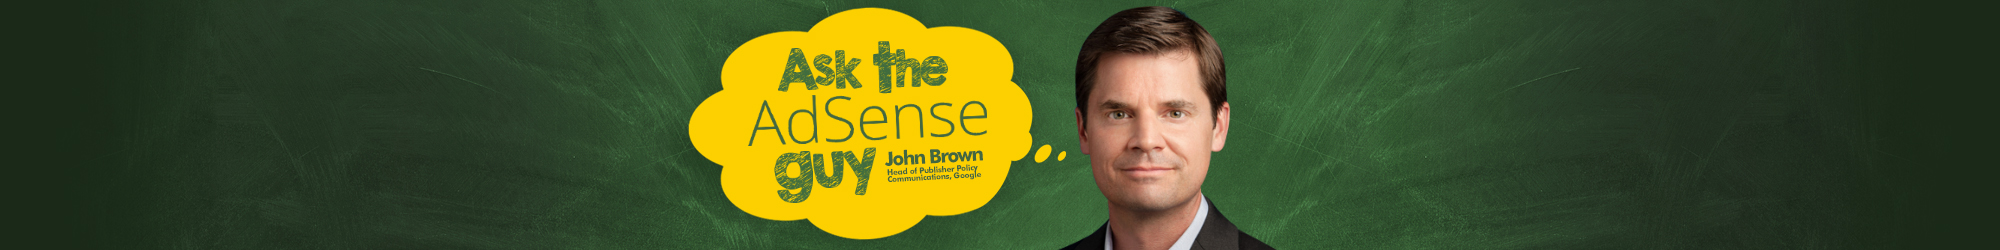 Send Your AdSense Questions to John Brown